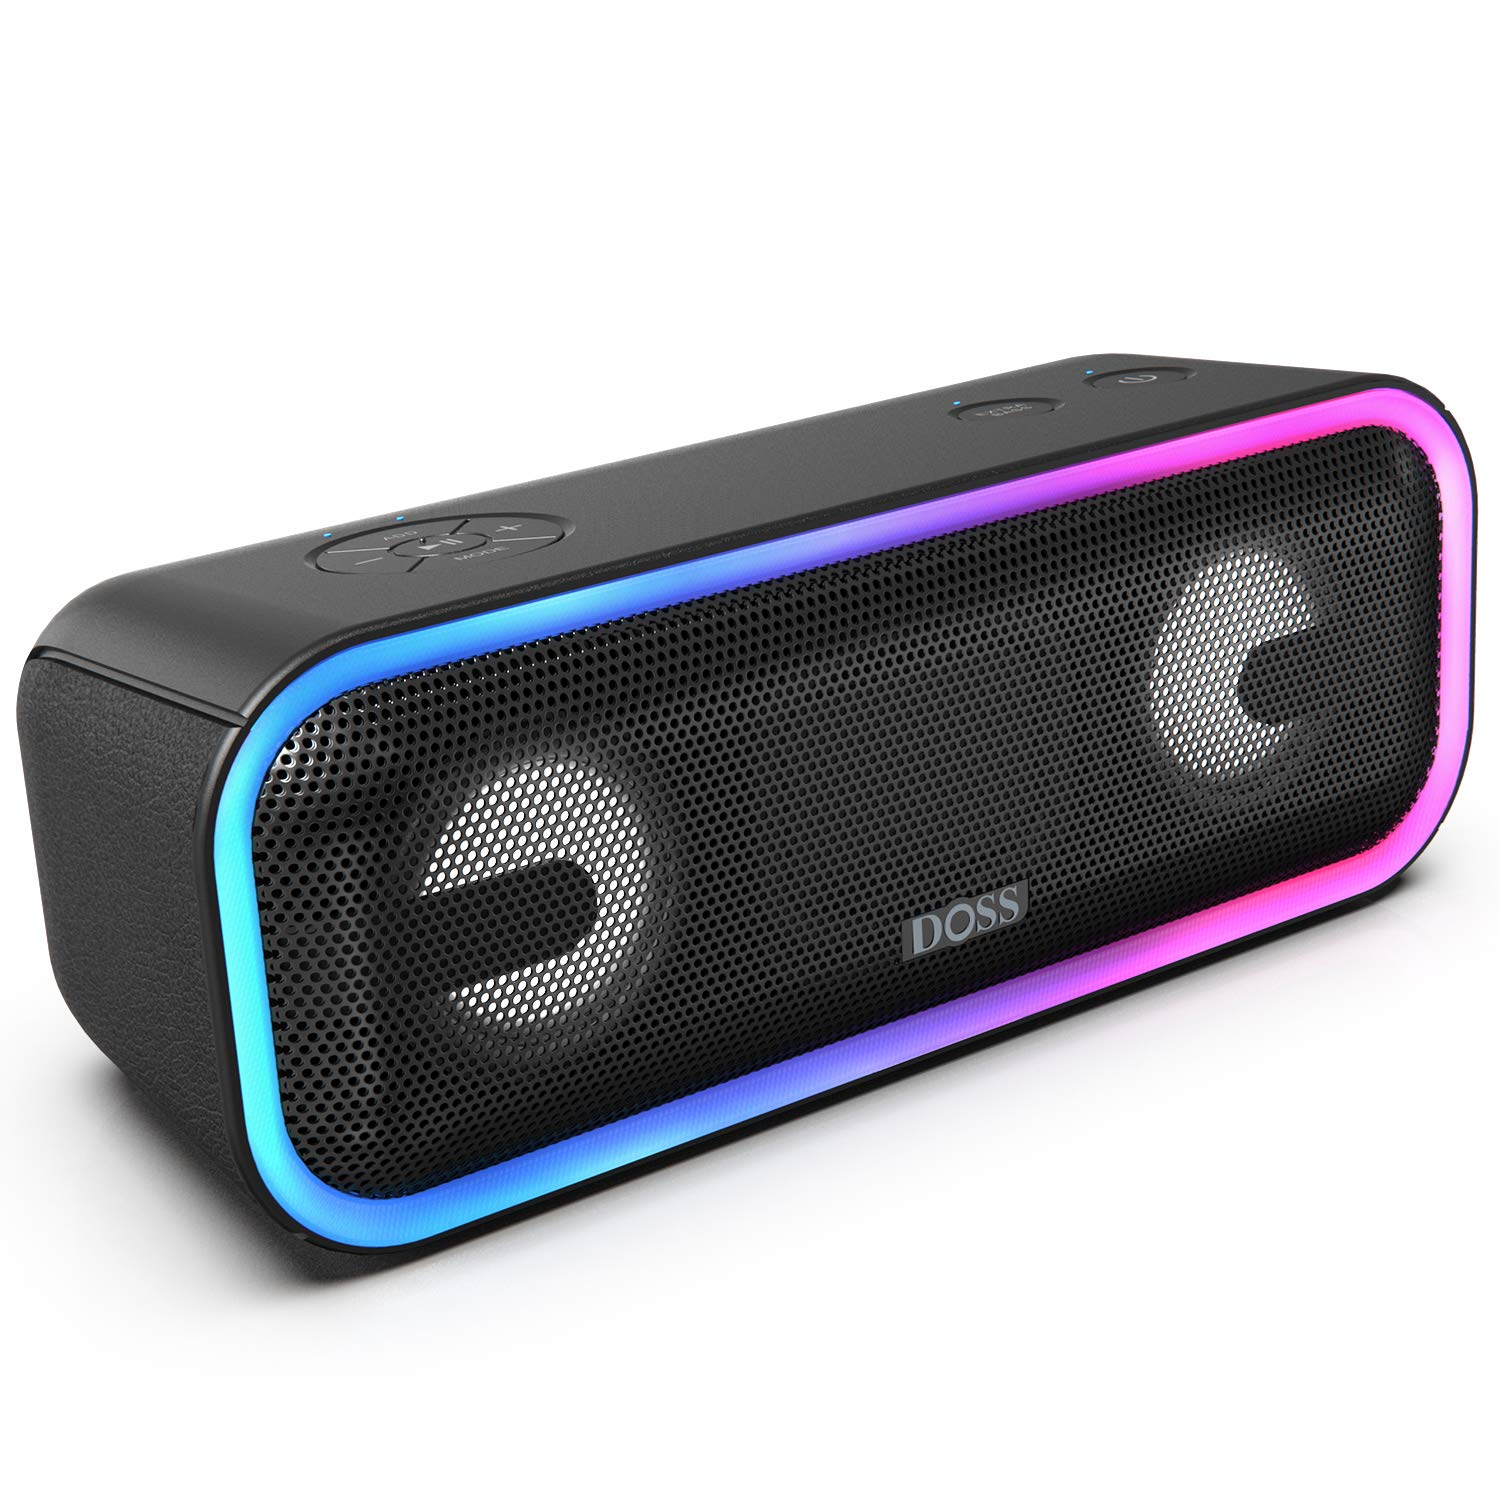 DOSS SoundBox Pro+ Wireless Bluetooth Speaker with 24W Impressive Sound, Booming Bass, Wireless Stereo Pairing, Mixed Colors Lights, IPX5 Waterproof, 15 Hrs Battery Life, 66 ft Bluetooth Range-Black